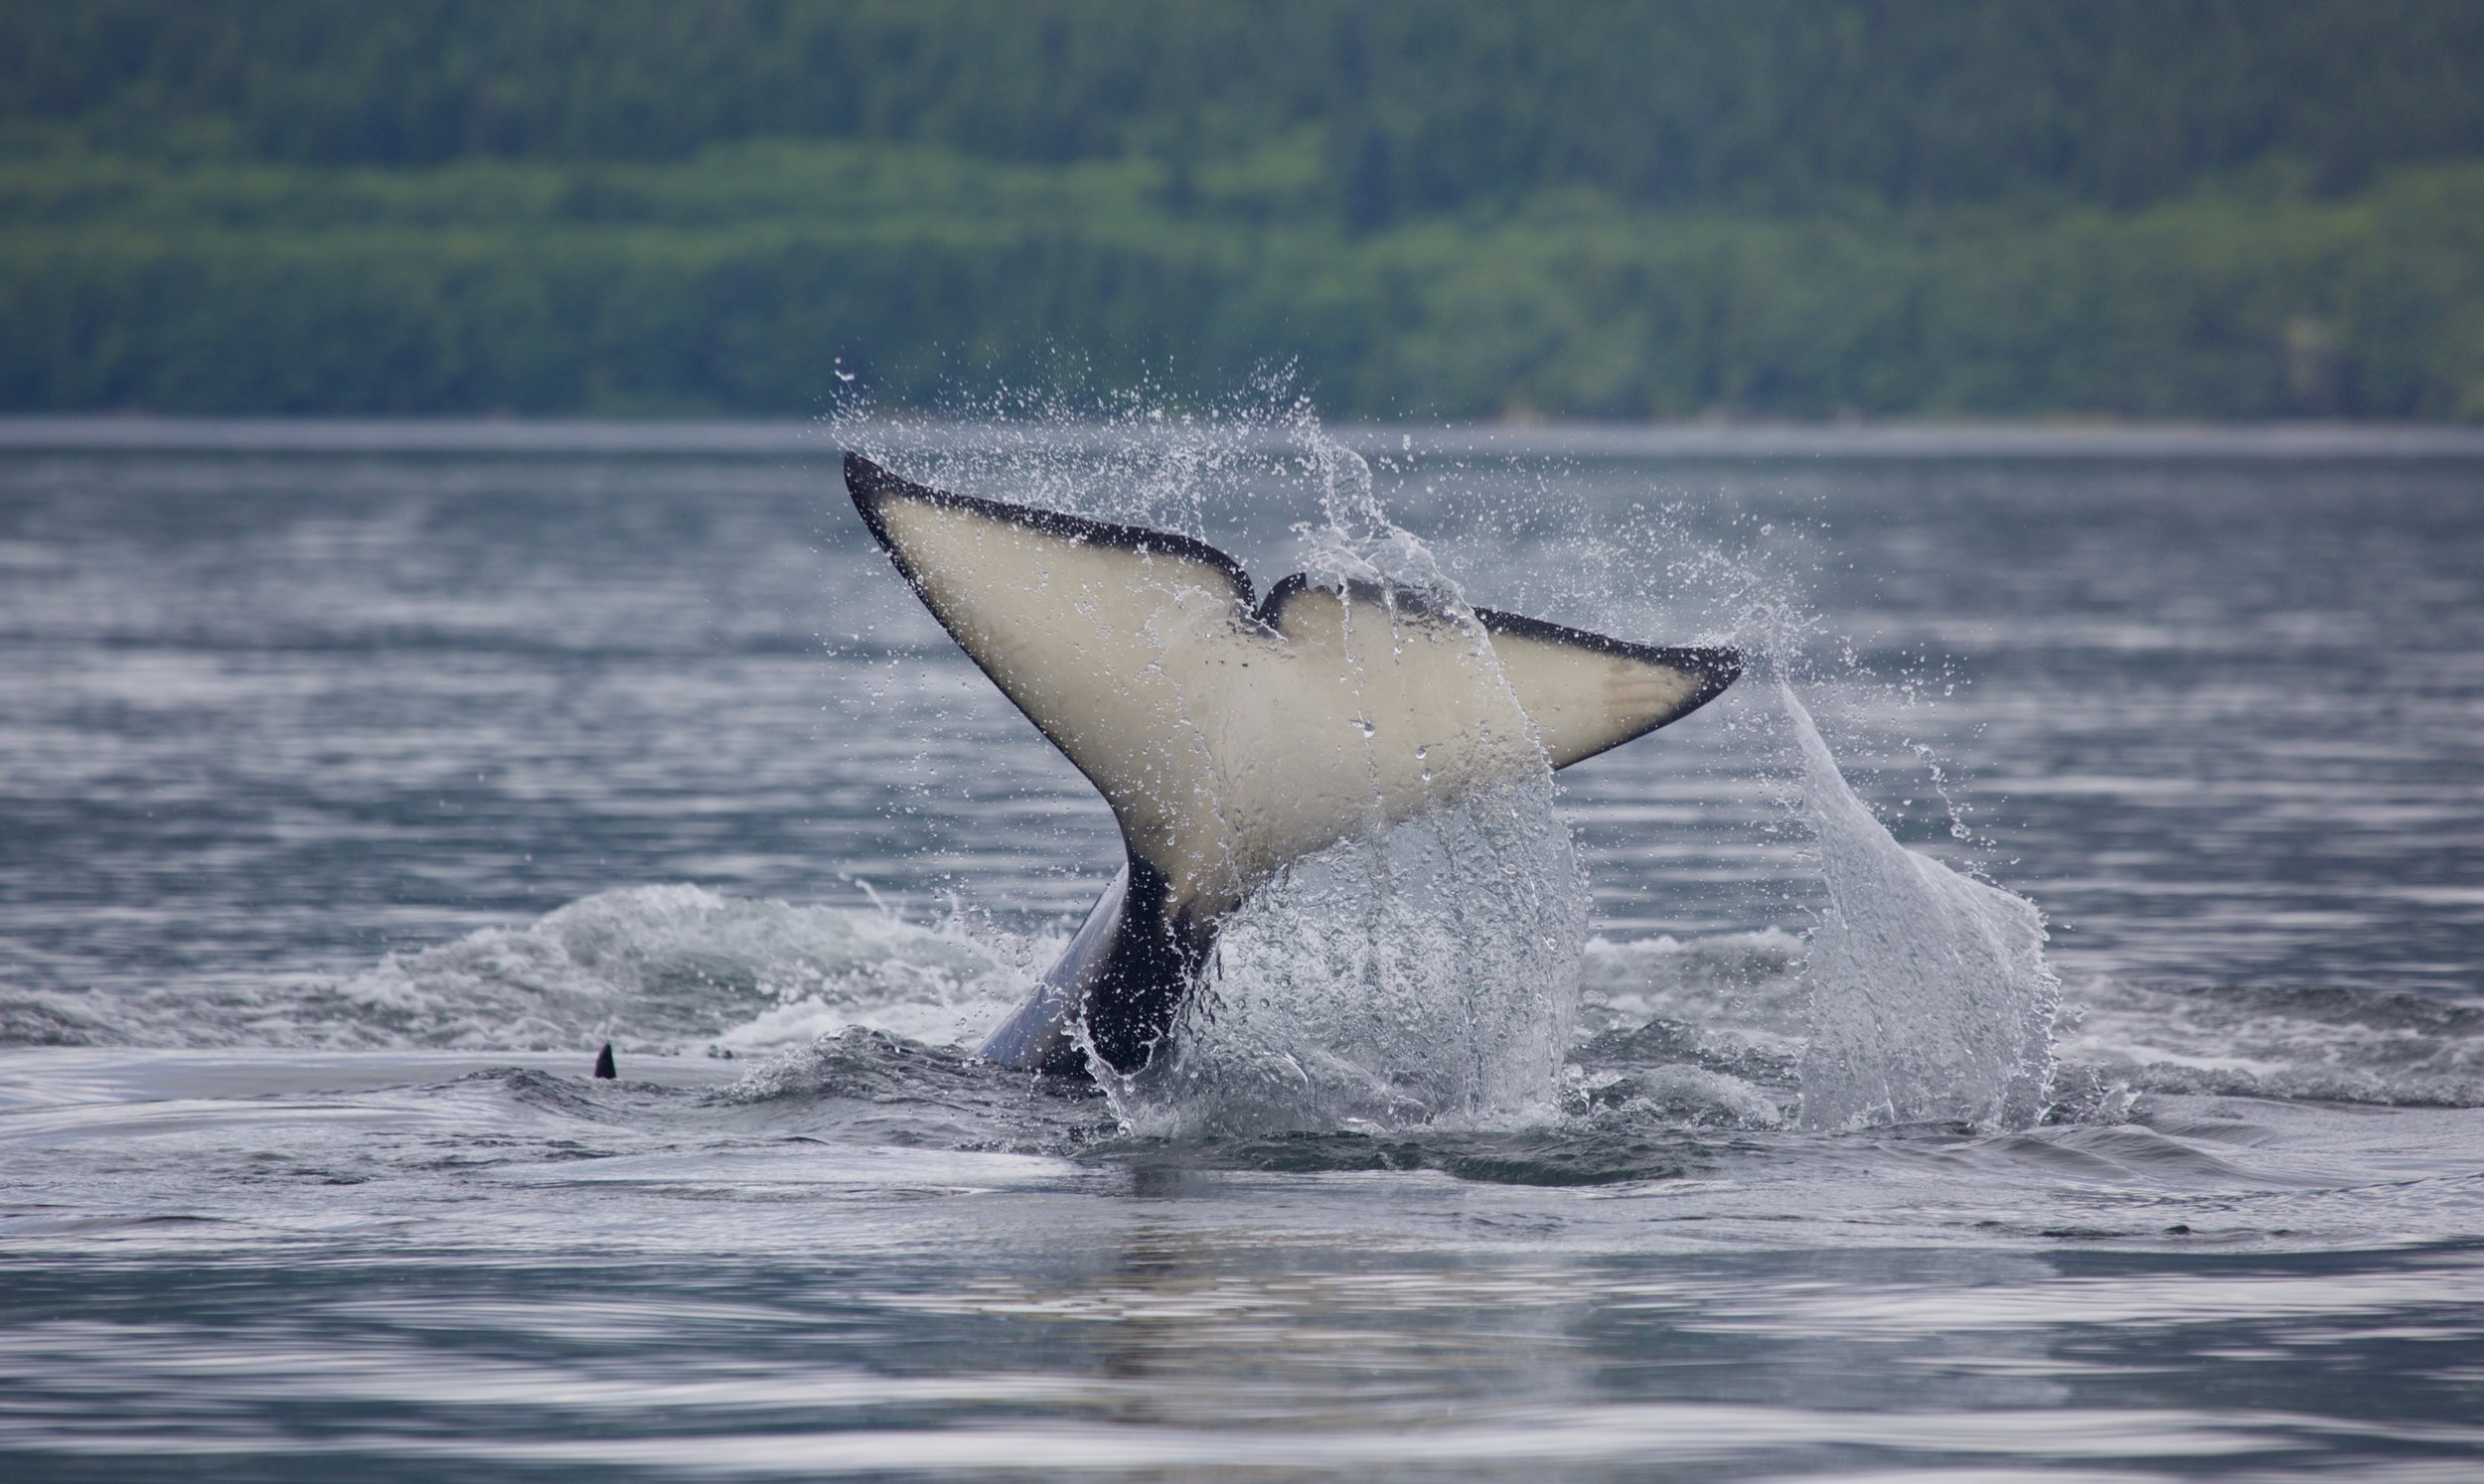 Tofino Killer Whale Tours